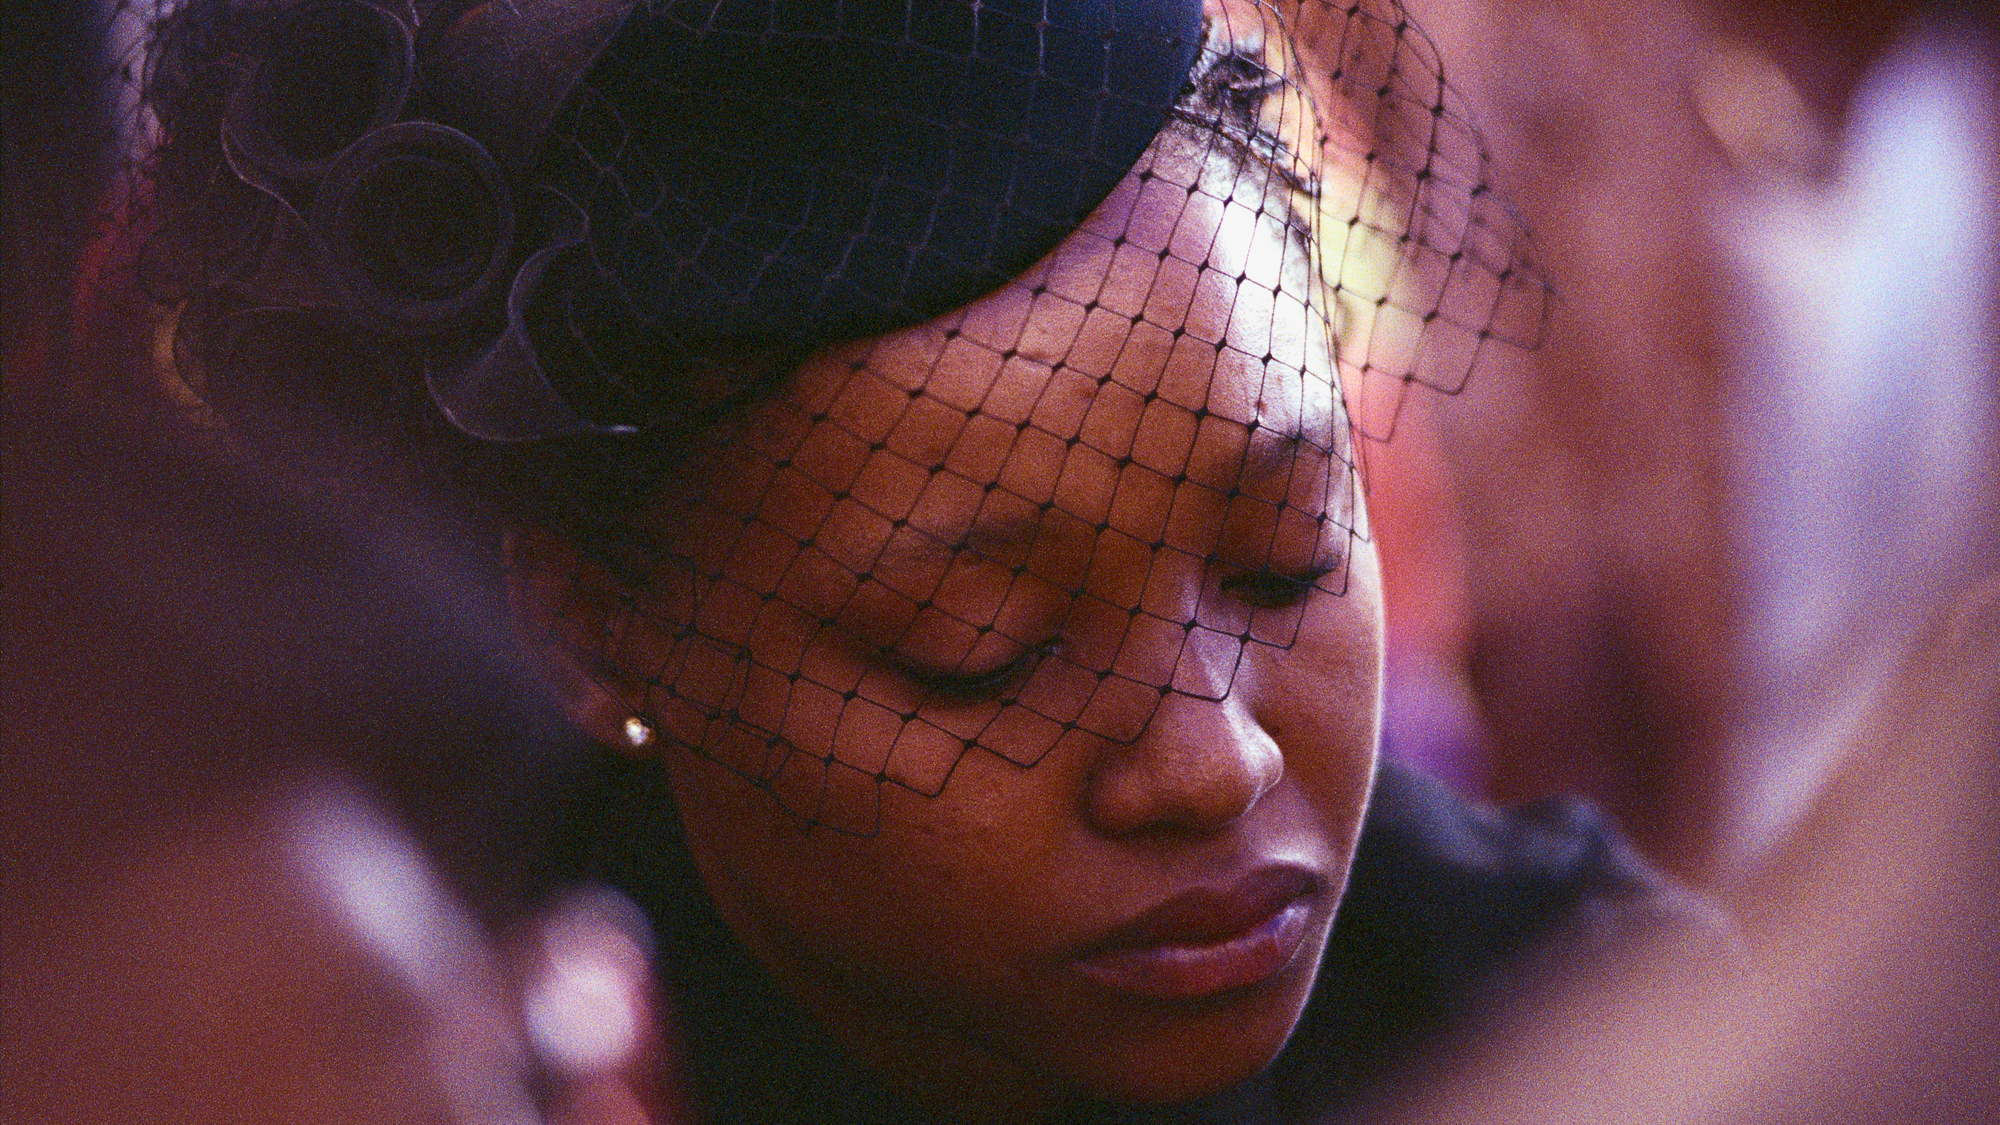 Mourner at a Funeral